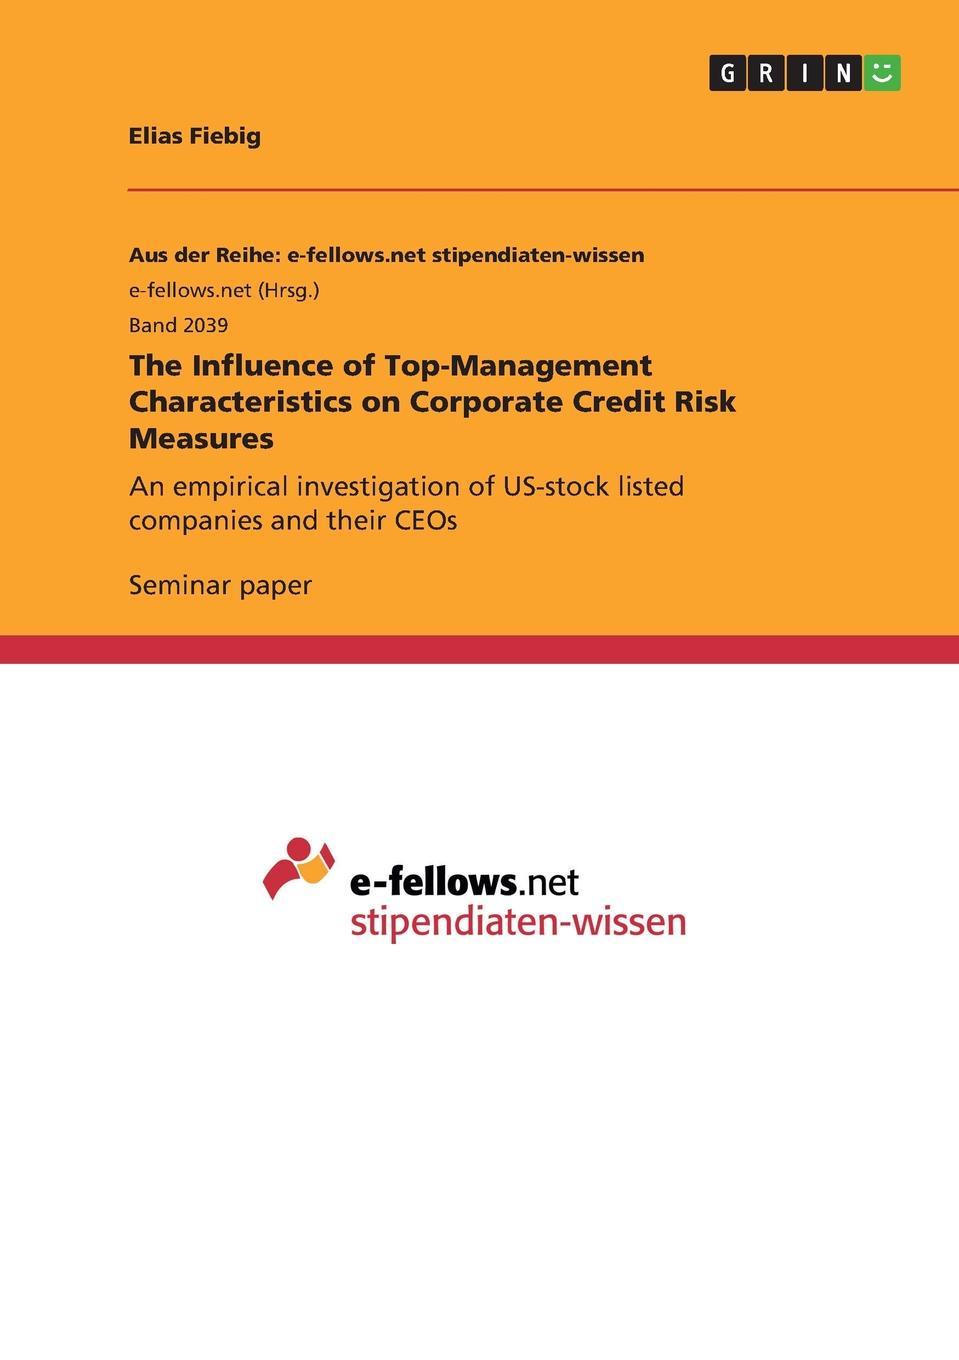 Elias Fiebig The Influence of Top-Management Characteristics on Corporate Credit Risk Measures edith hotchkiss corporate financial distress and bankruptcy predict and avoid bankruptcy analyze and invest in distressed debt